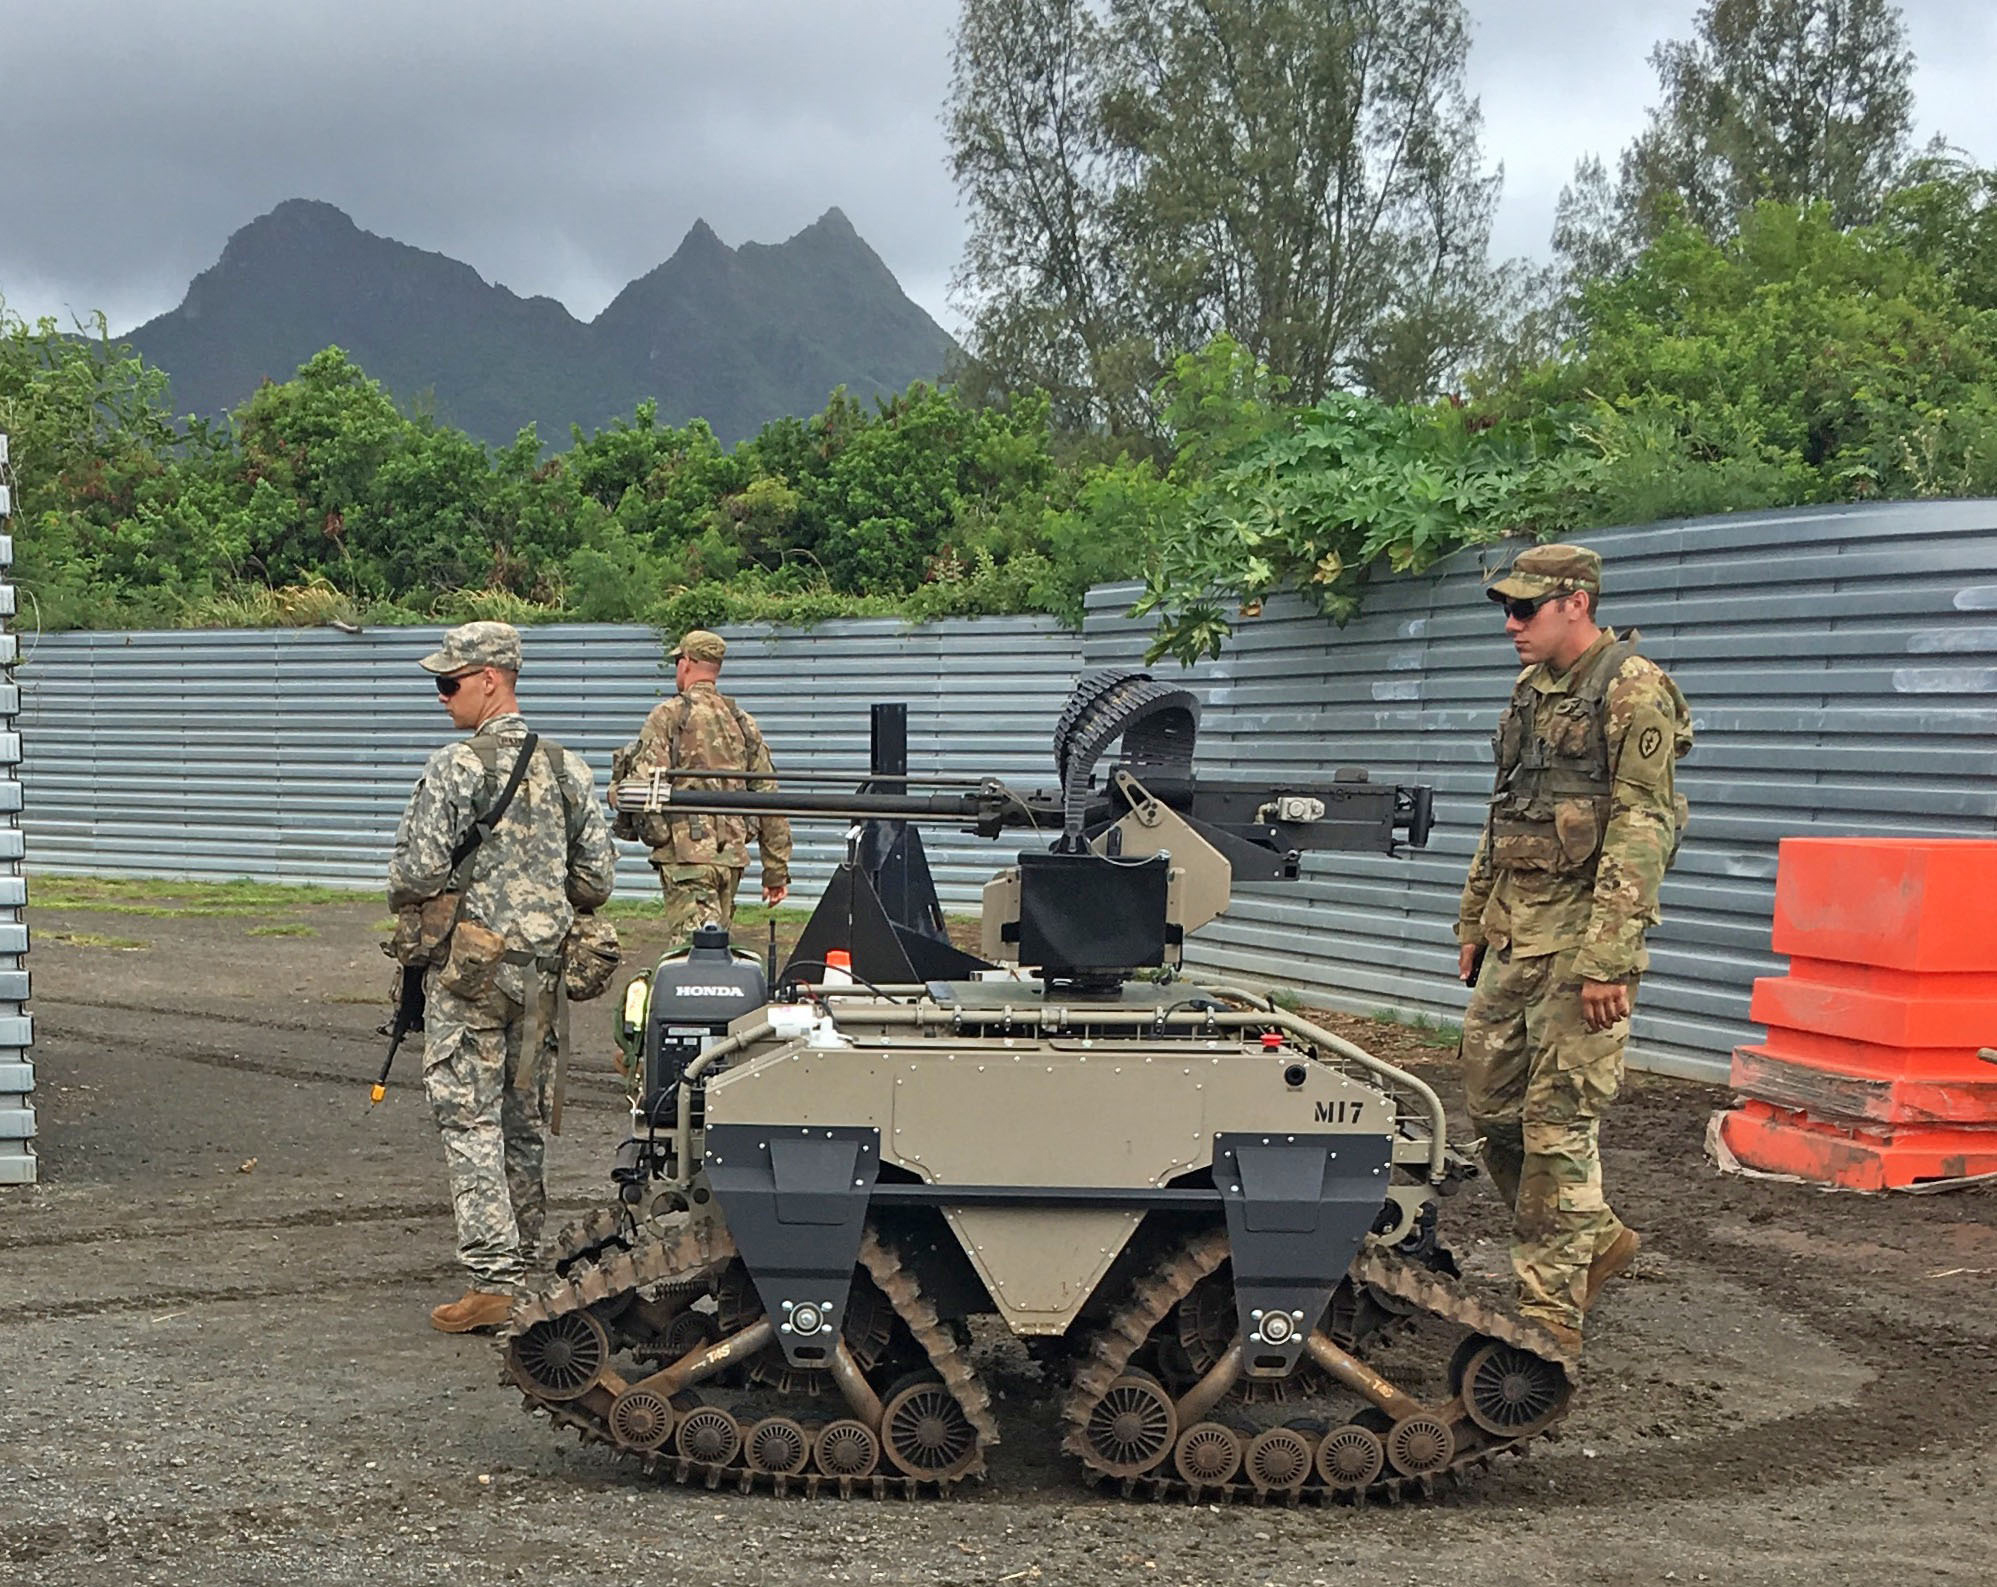 Soldiers of the 25th Infantry Division employed this Multipurpose Unmanned Tactical Transport, armed with an M2 .50-caliber machine gun, during the Pacific Manned Unmanned – Initiative at Marine Corps Training Area Bellows in July 2016. (Photo by Kimberly Bratic, TARDEC Public Affairs)